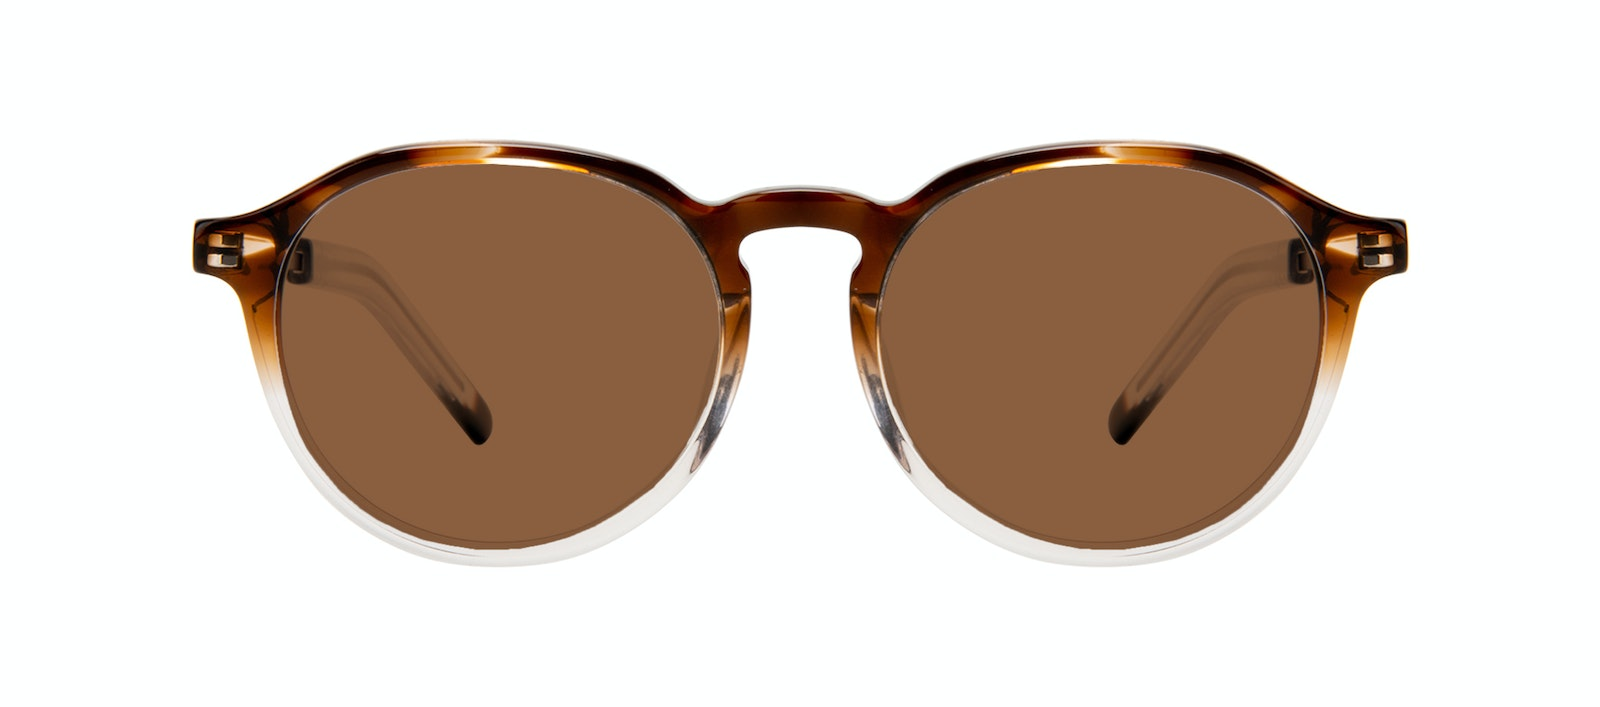 Affordable Fashion Glasses Round Sunglasses Men Prime Bark Front